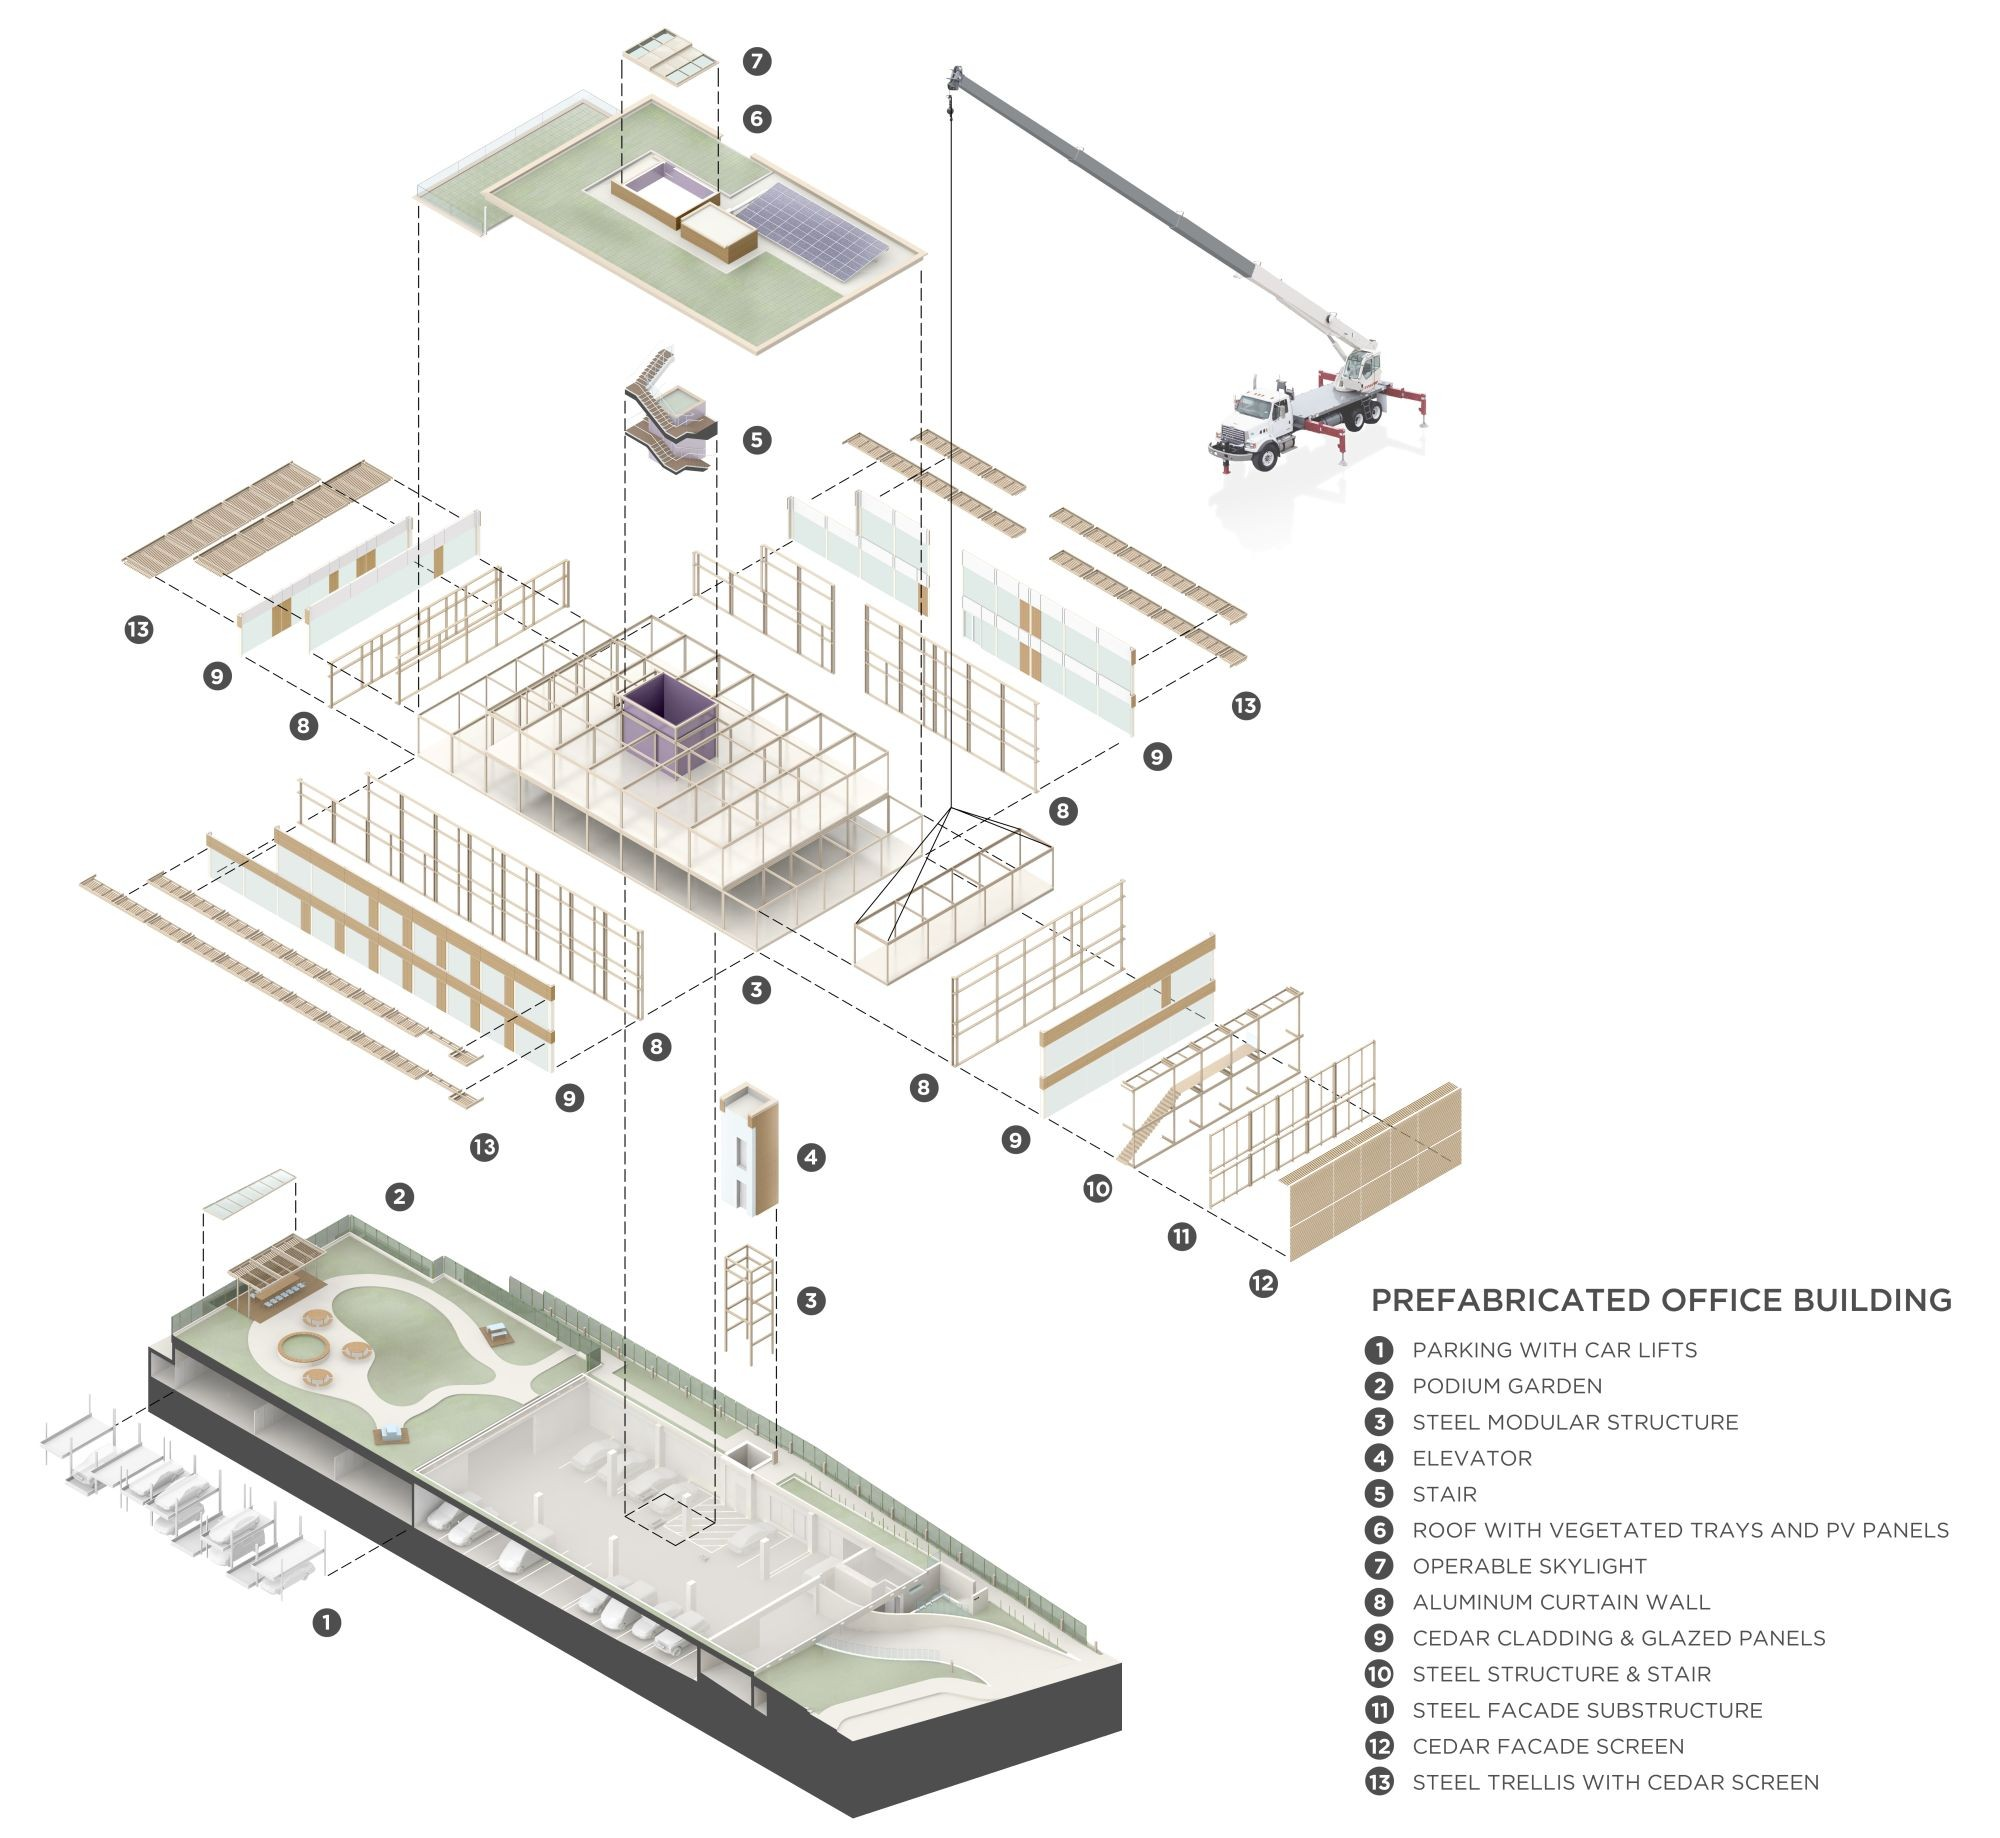 exploded axon diagram 99 ford explorer radio wiring gallery of venture capital office headquarters paul